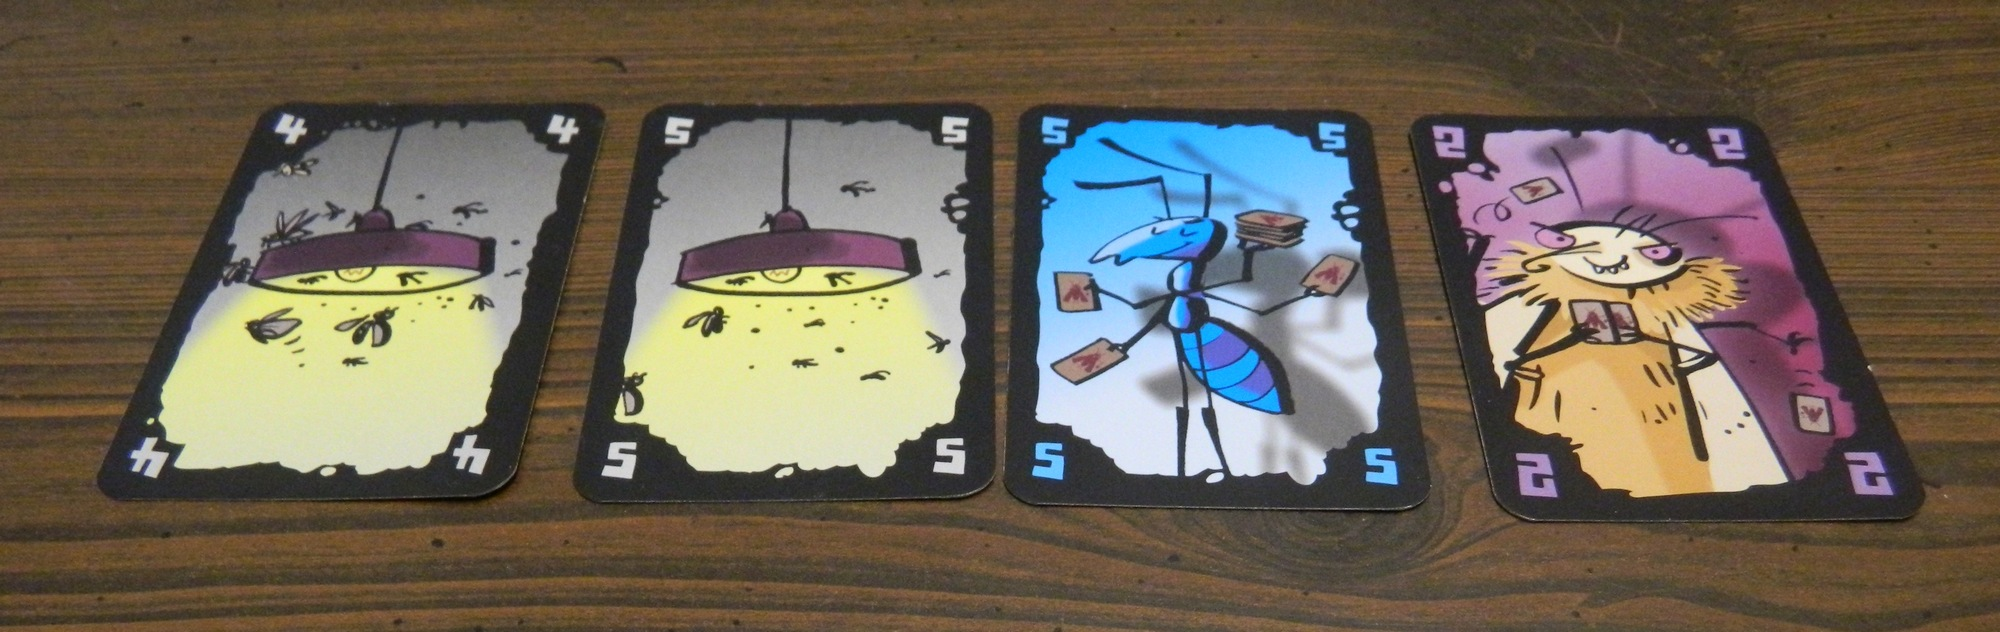 Cheating Moth Card Game Review and Rules | Geeky Hobbies